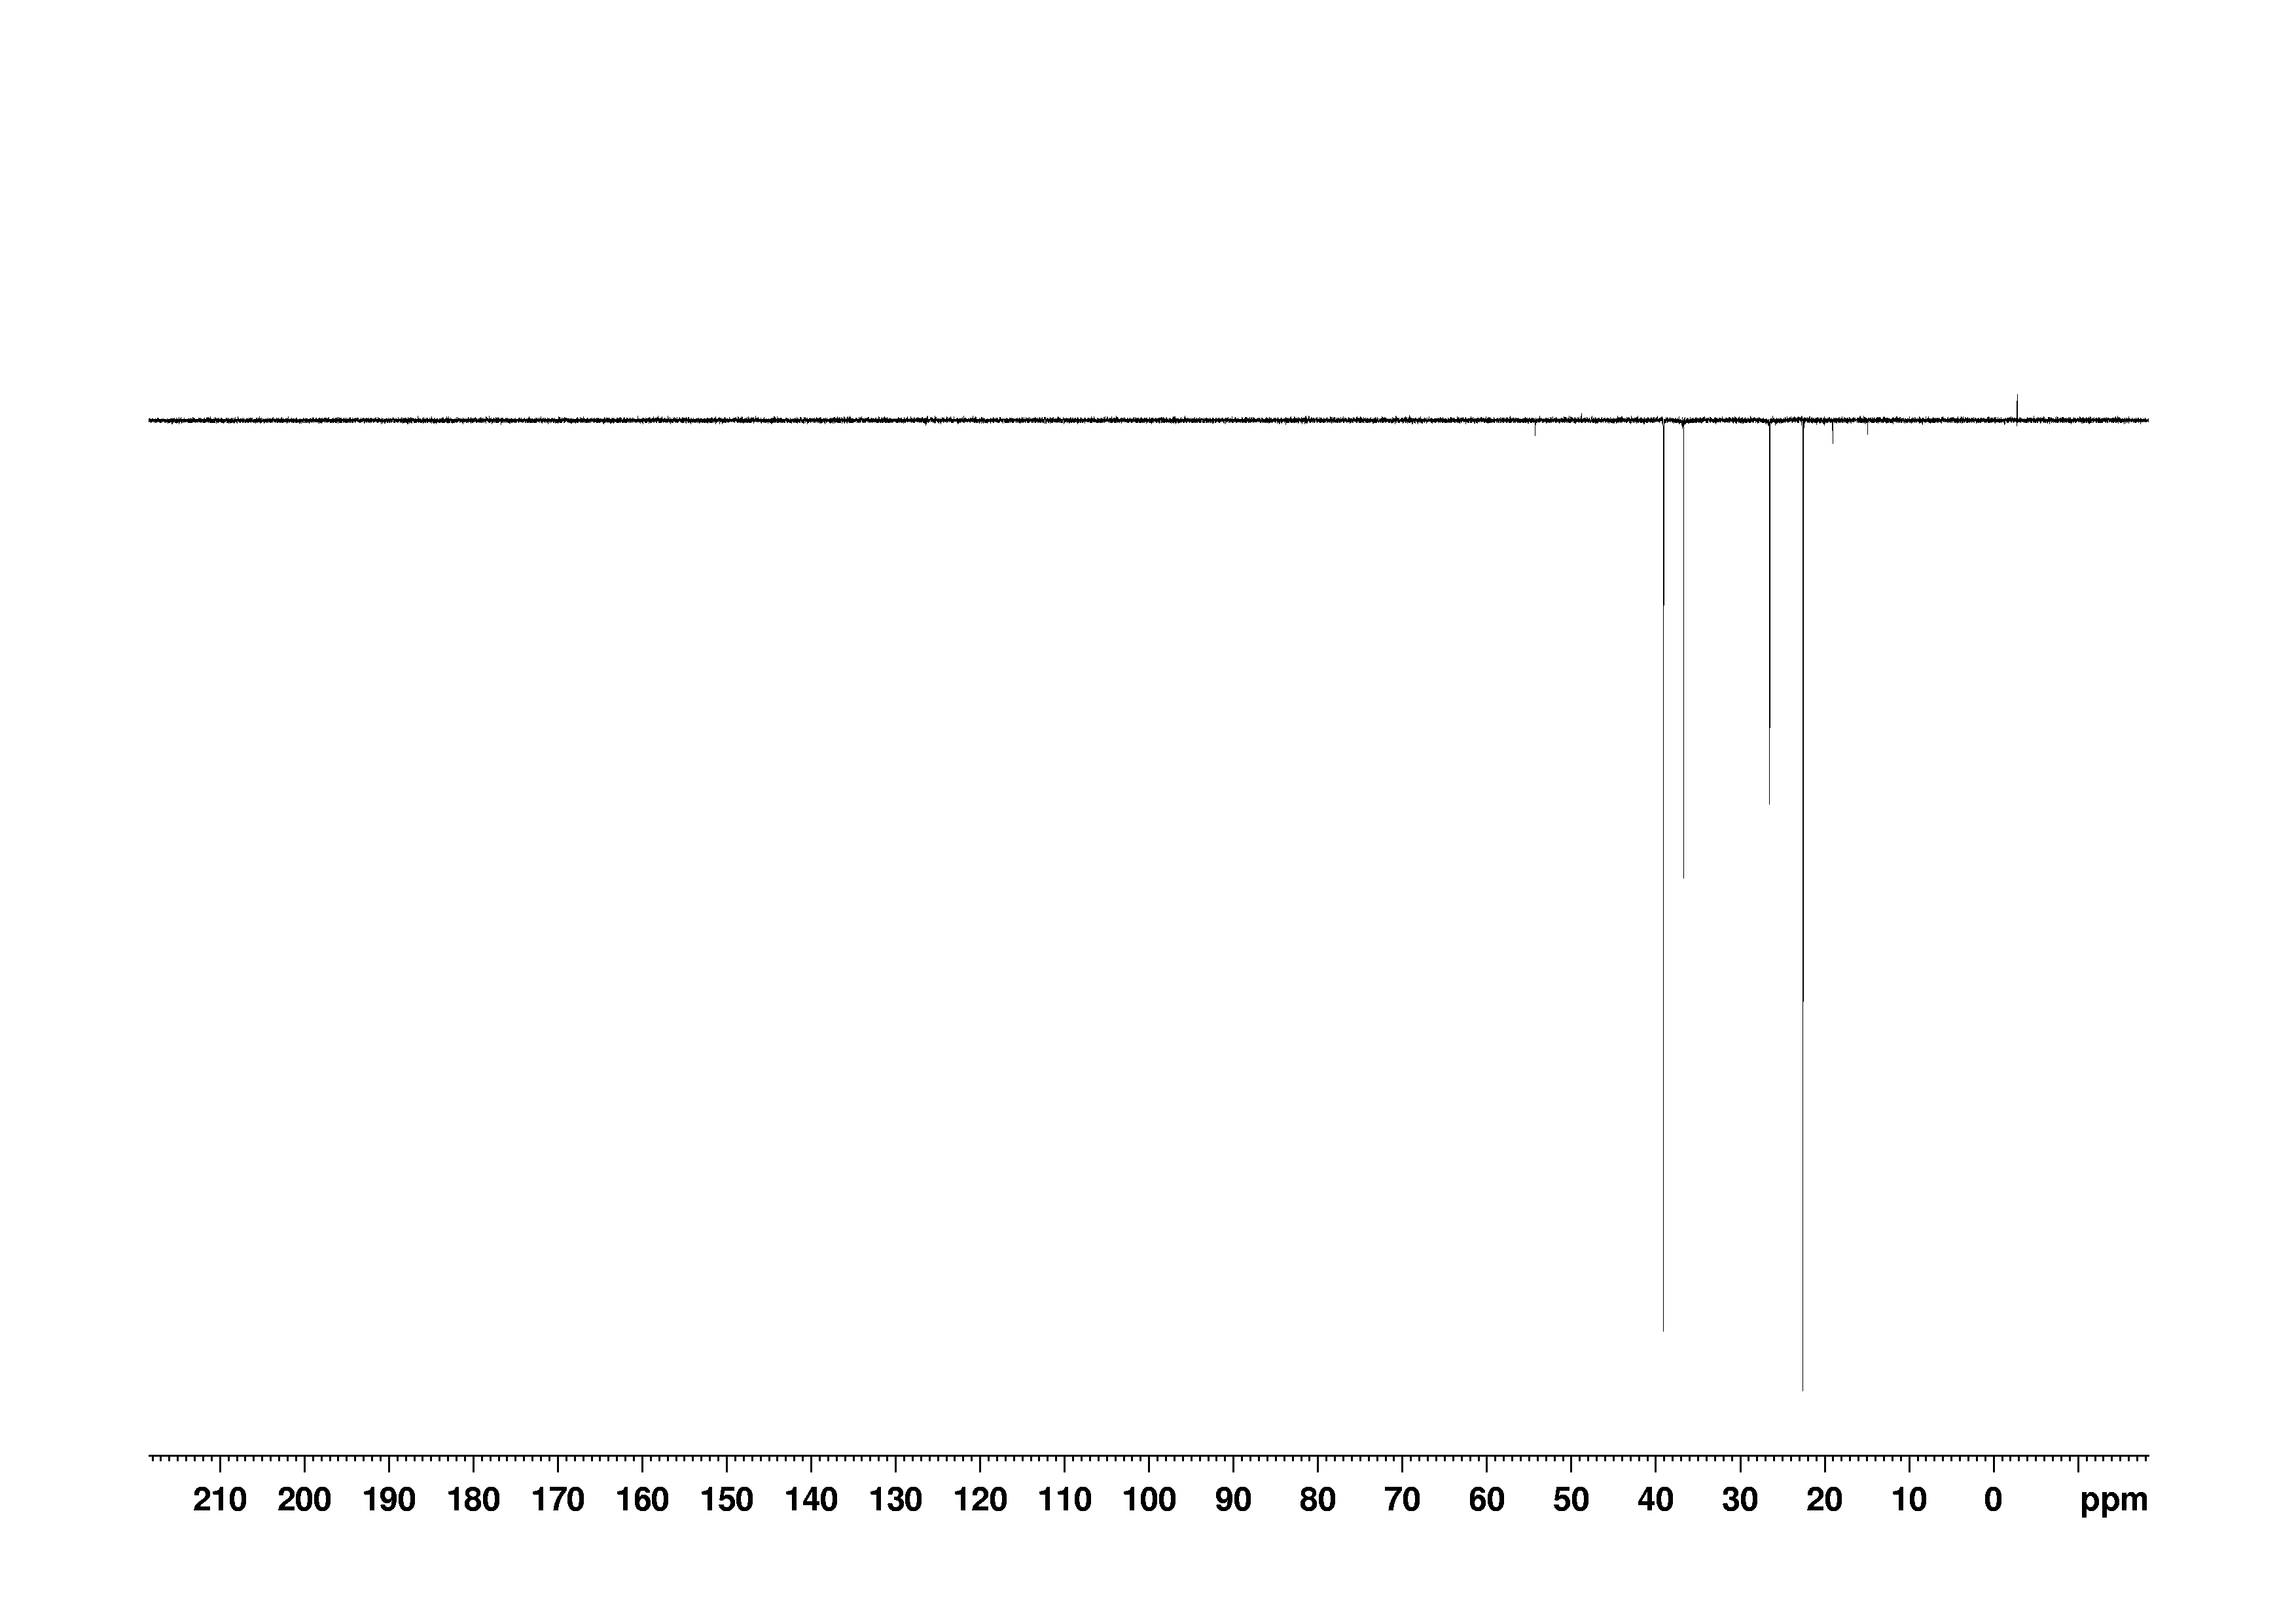 1D DEPT135, 7.4 spectrum for 5-Aminovaleric acid